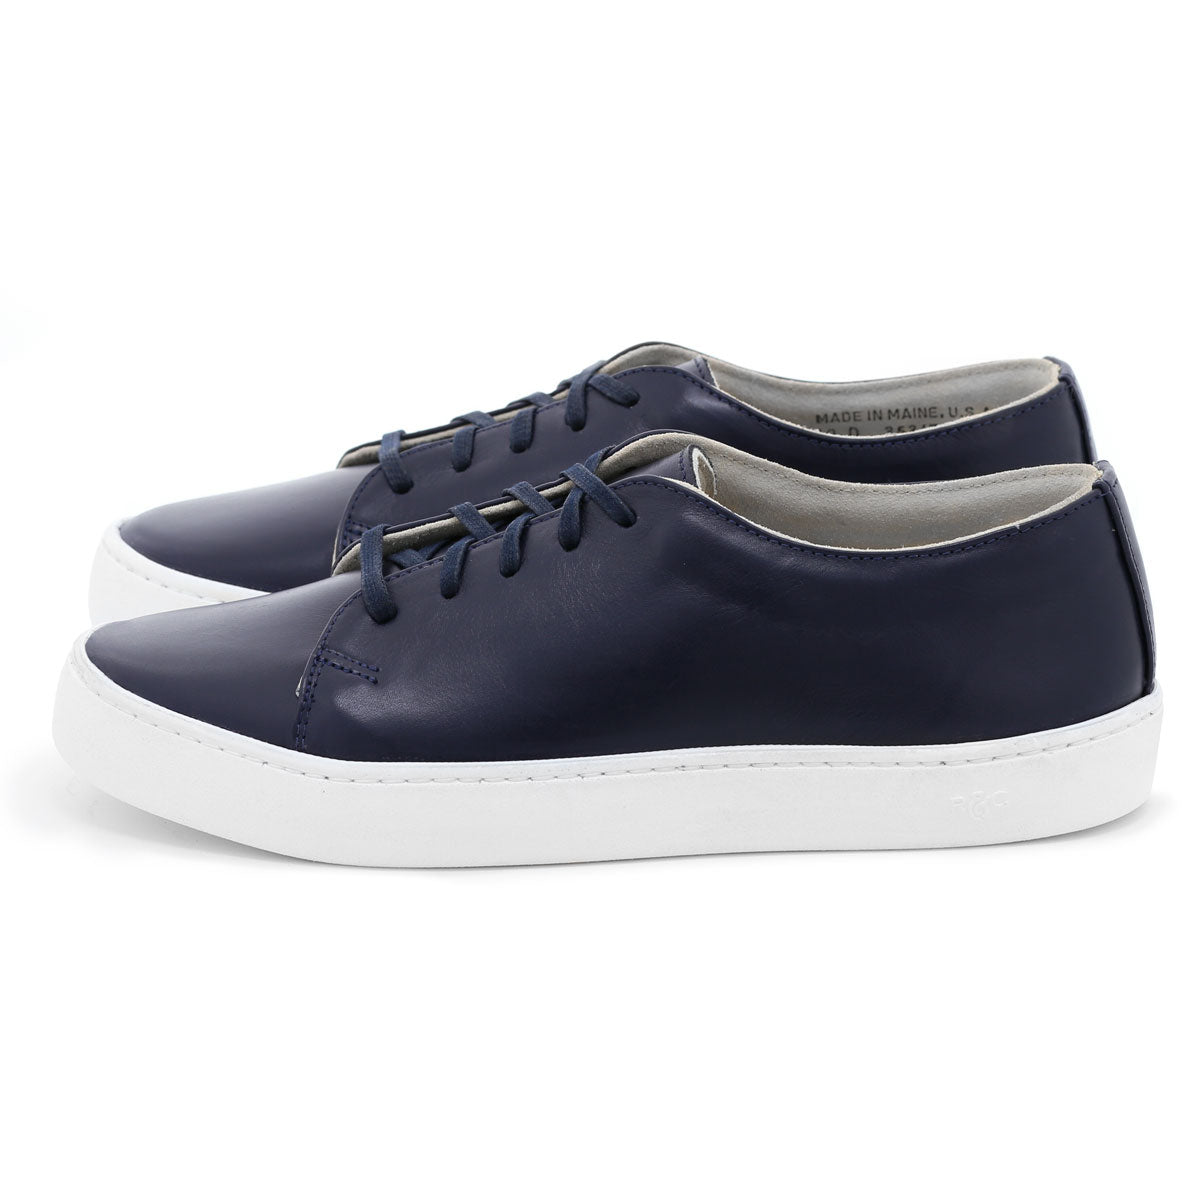 Court Classic 2.0 Low - Navy Weston